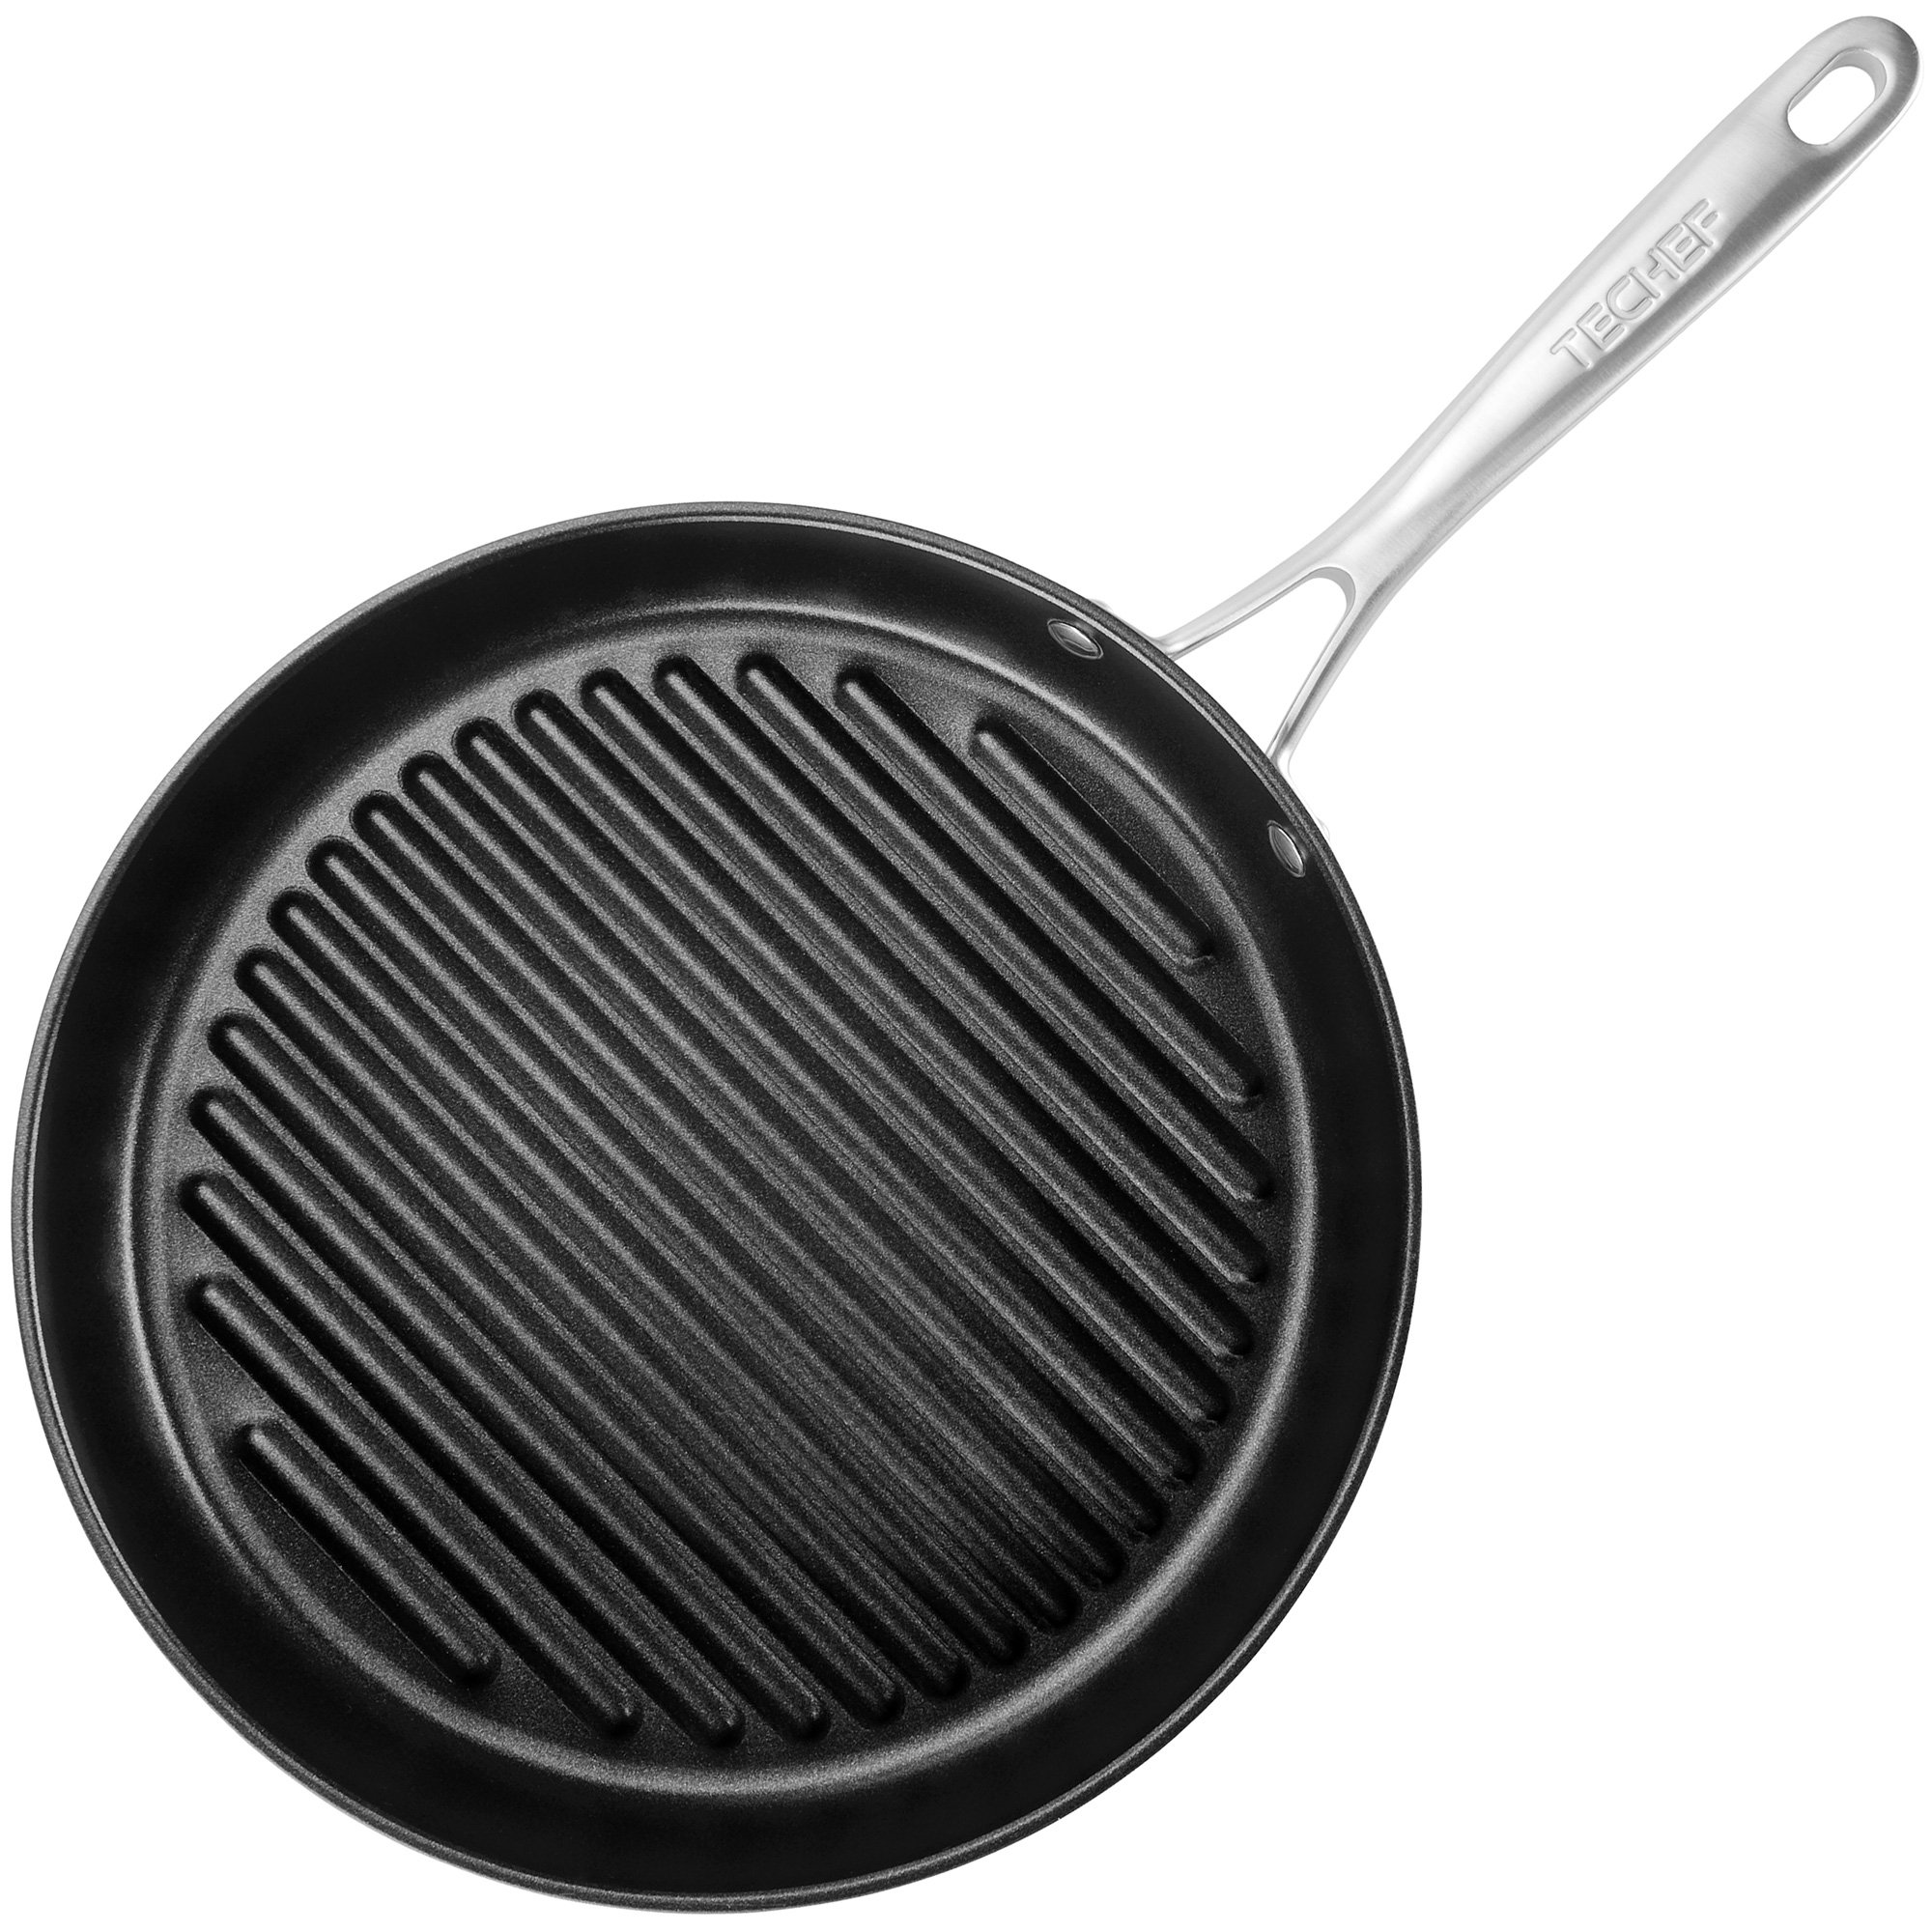 TECHEF - Onyx Collection Grill Pan Coated with New Teflon Platinum Non-Stick Coating PFOA Free, 12'', Black